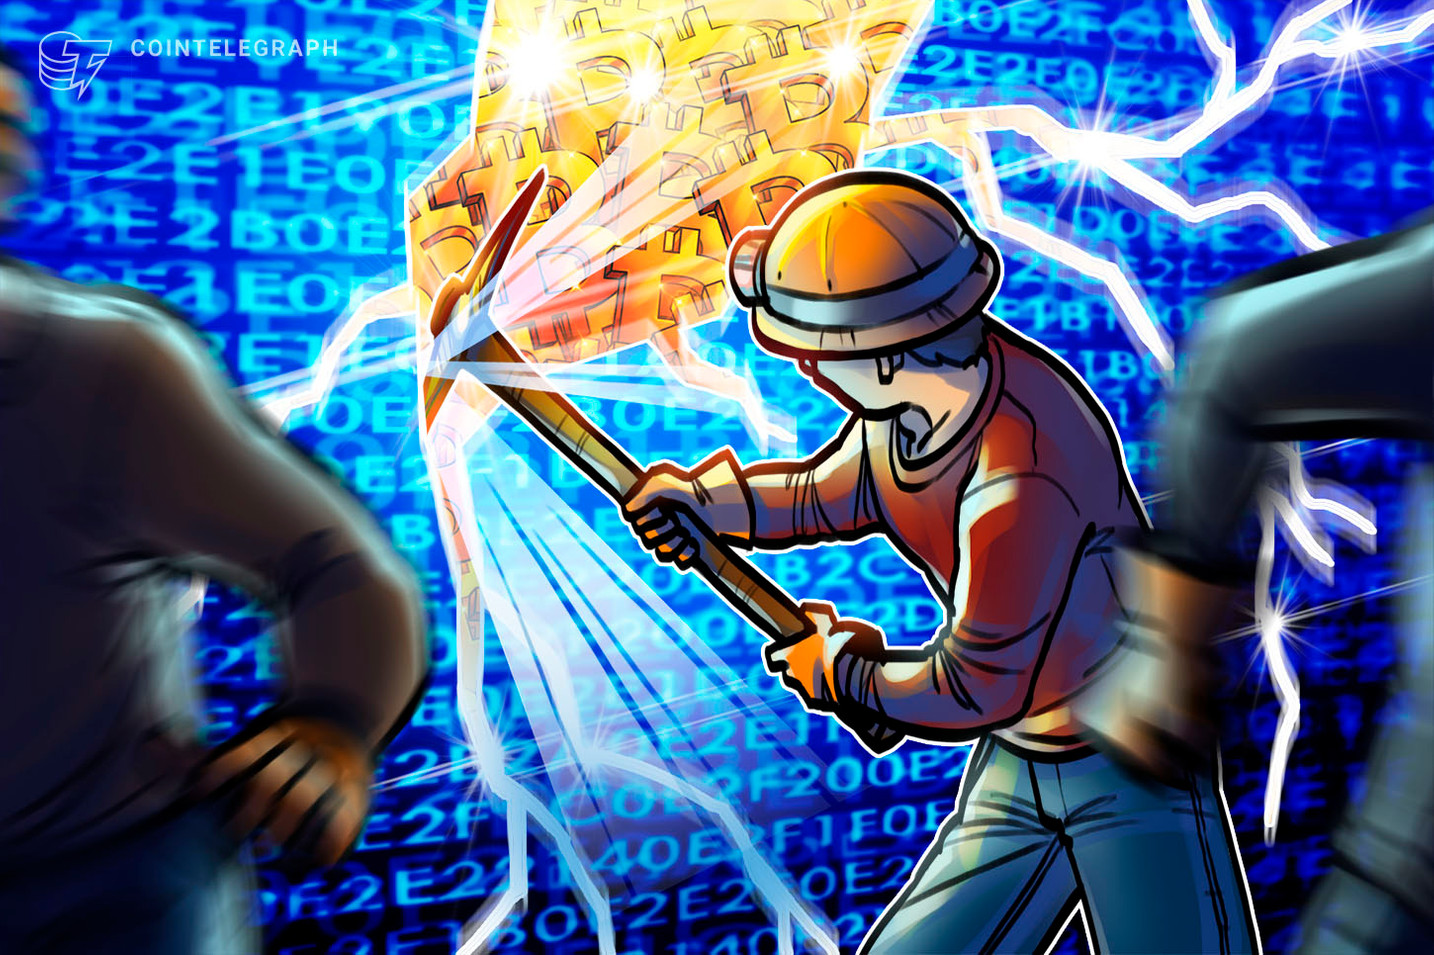 Miners have accumulated $600M worth of Bitcoin since Feb